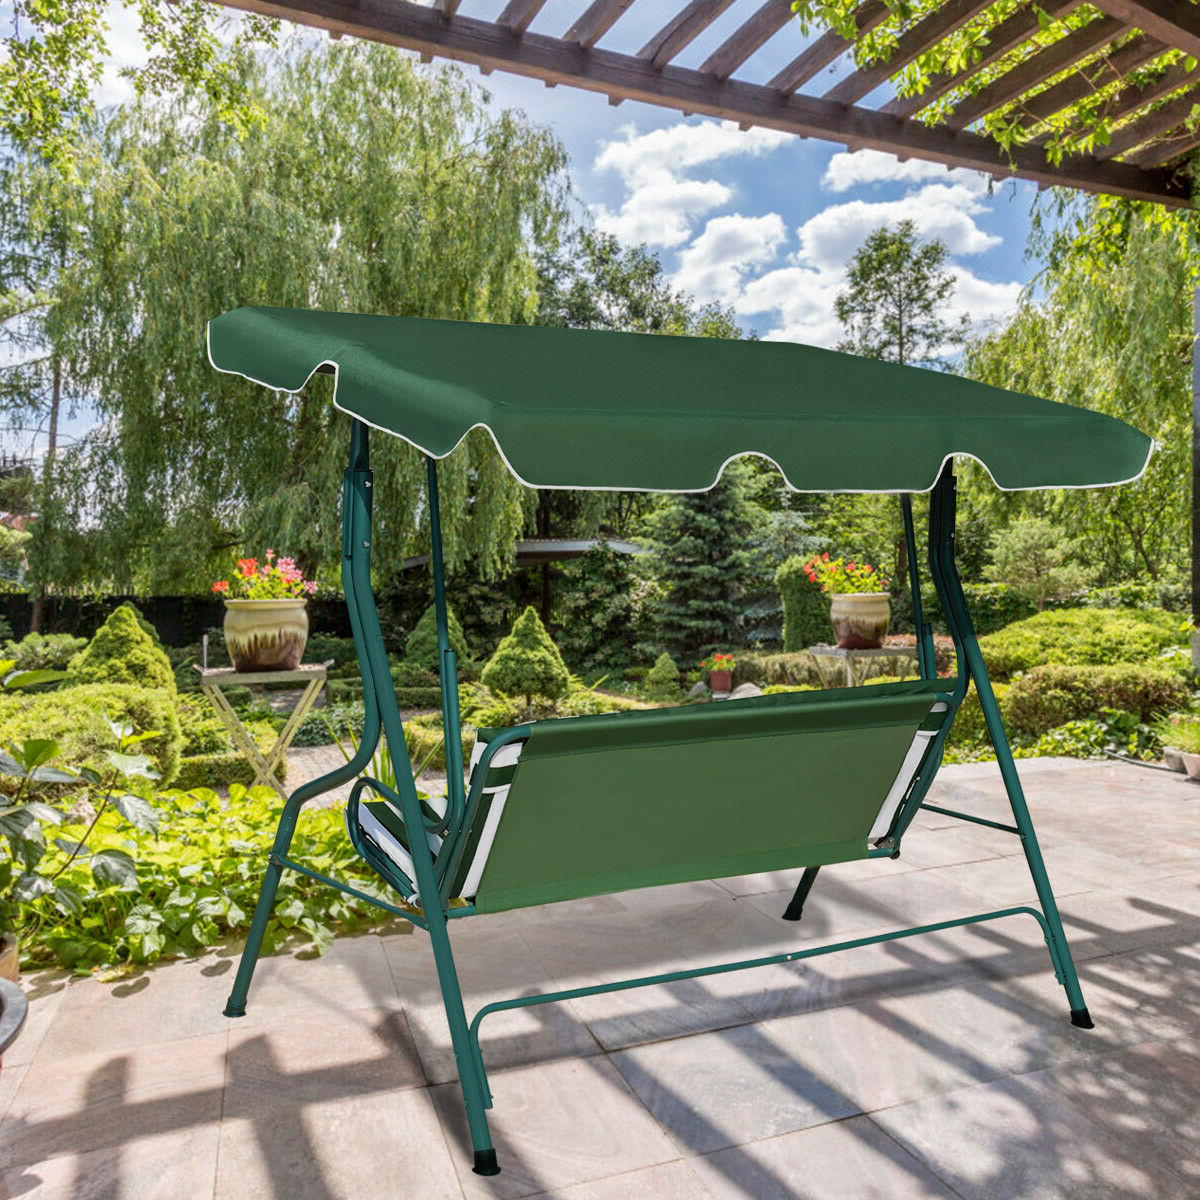 Most Recently Released 3 Seats Patio Canopy Swing Gliders Hammock Cushioned Steel Frame Within Costway 3 Seats Patio Canopy Swing Glider Hammock Cushioned Steel Frame  Backyar Green (View 21 of 30)